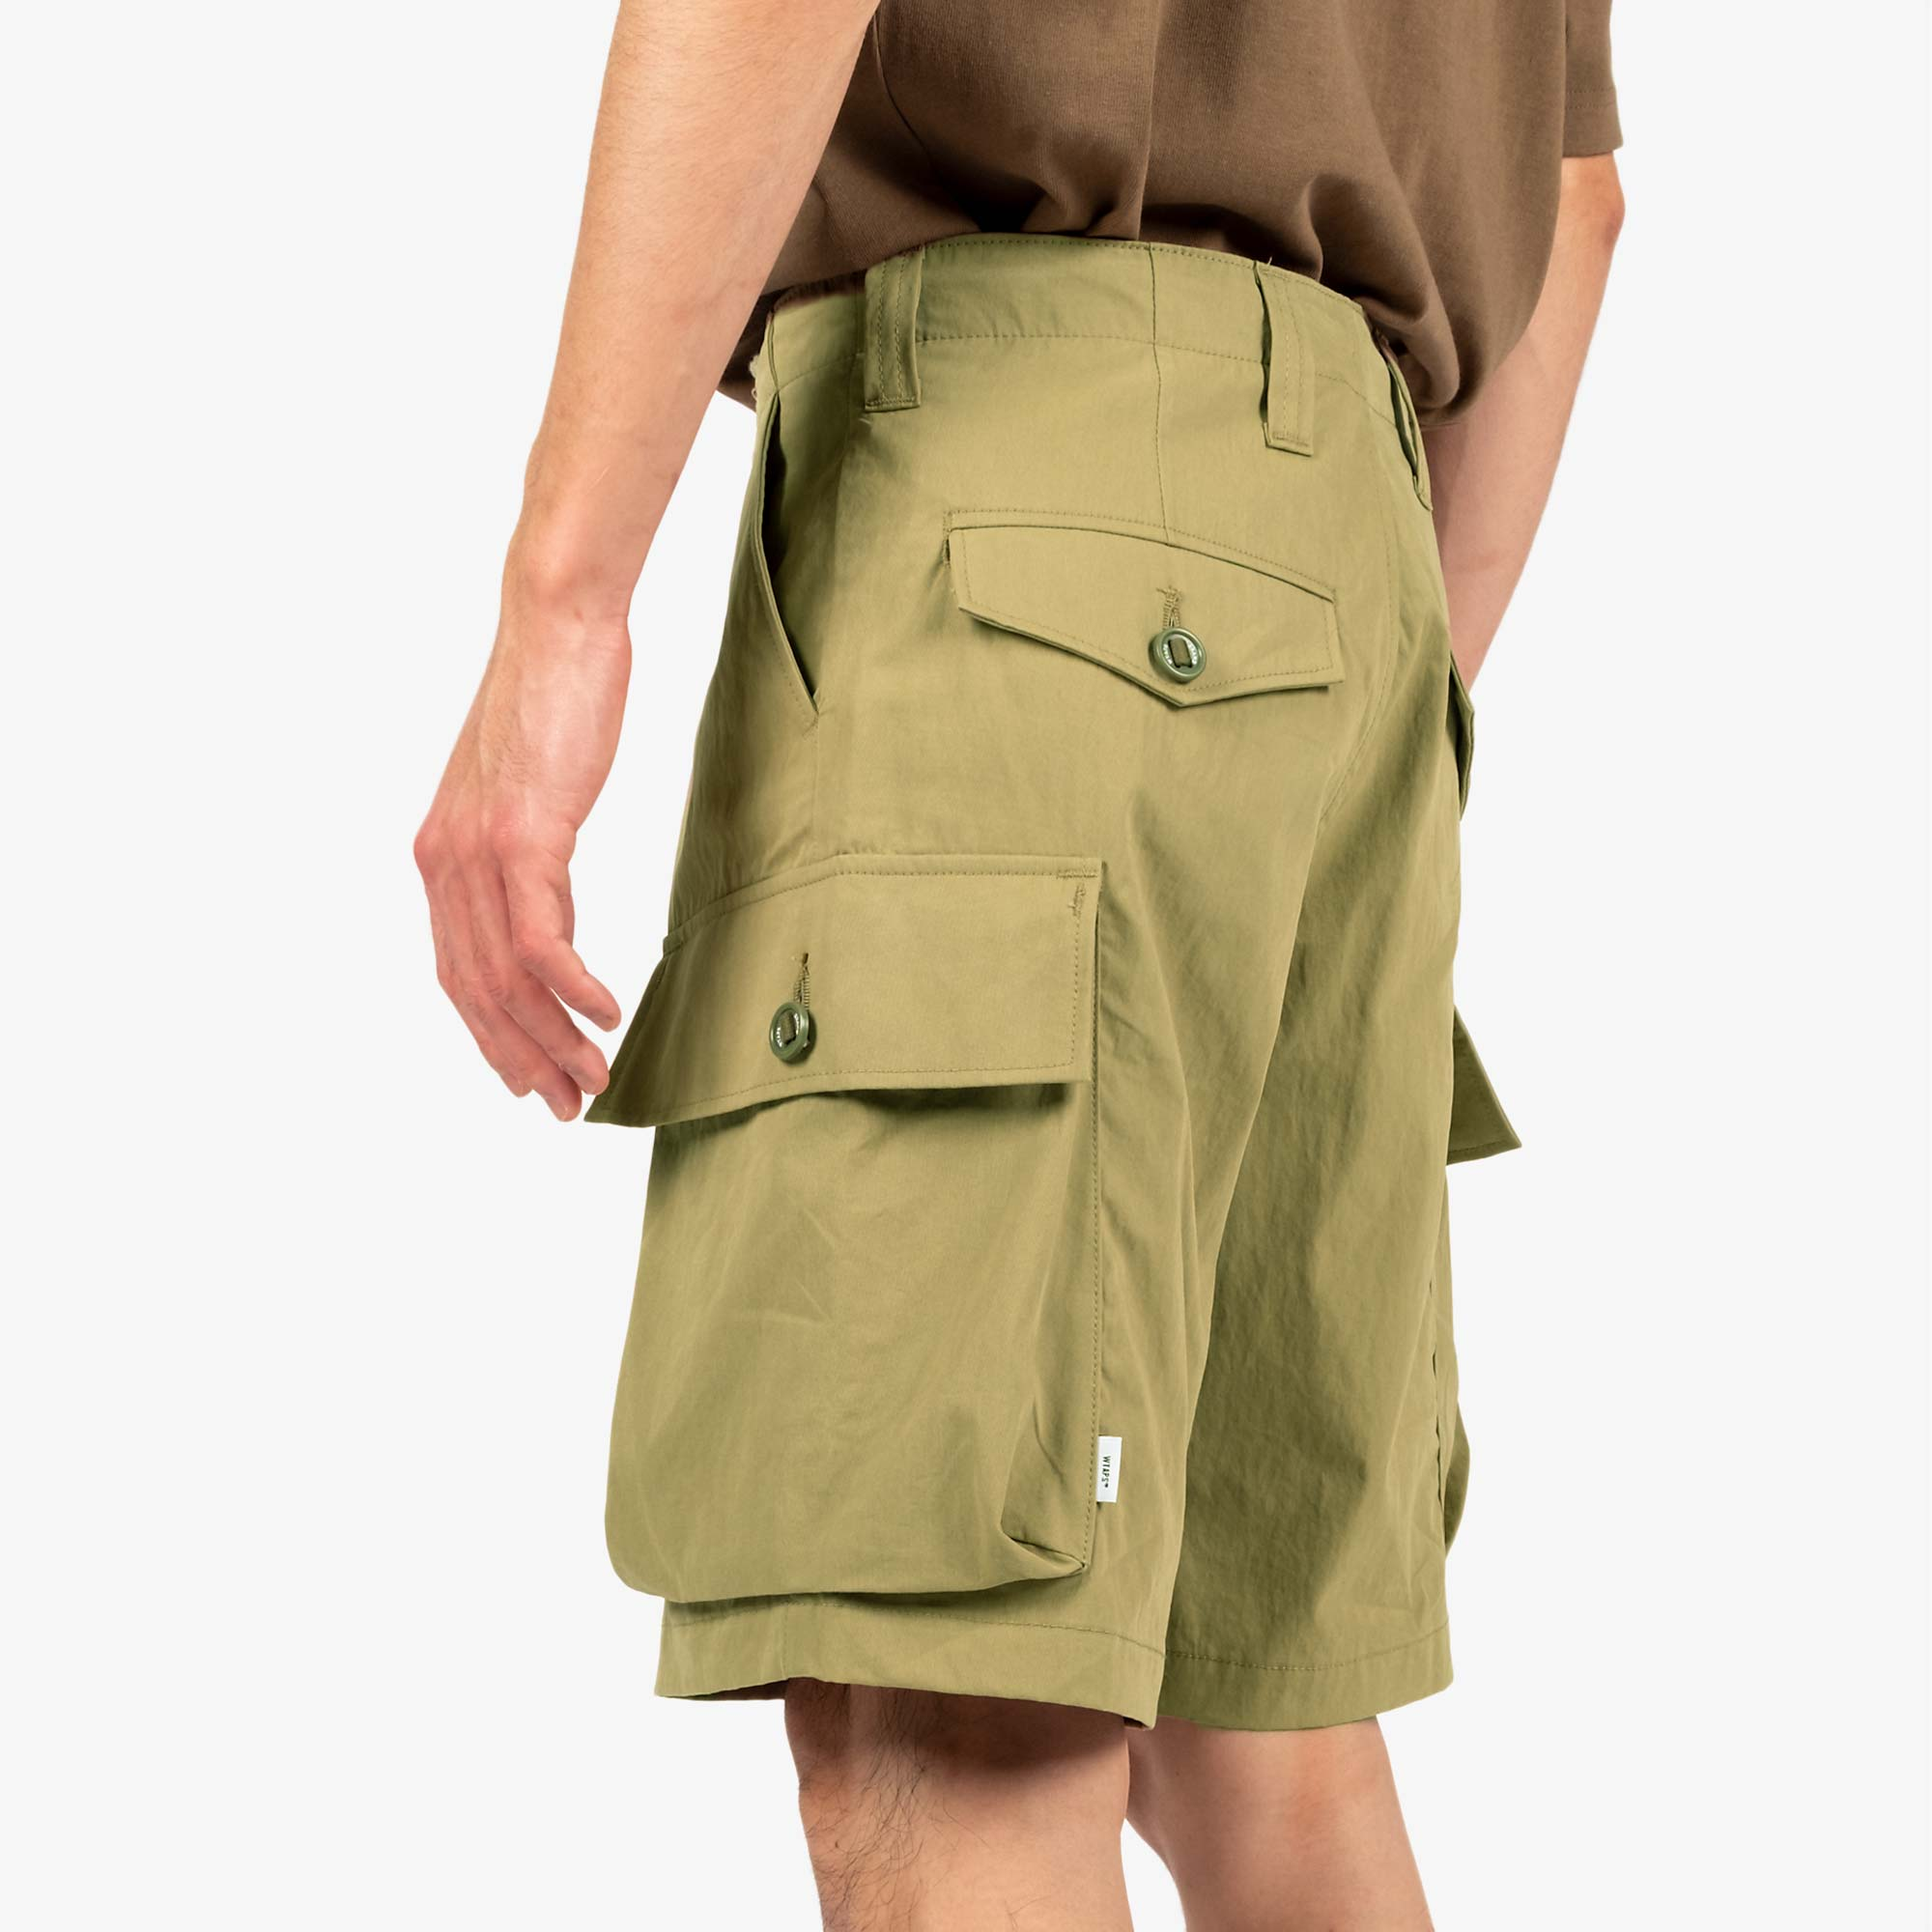 WTAPS Jungle Country Nyco Shorts - Olive Drab 3